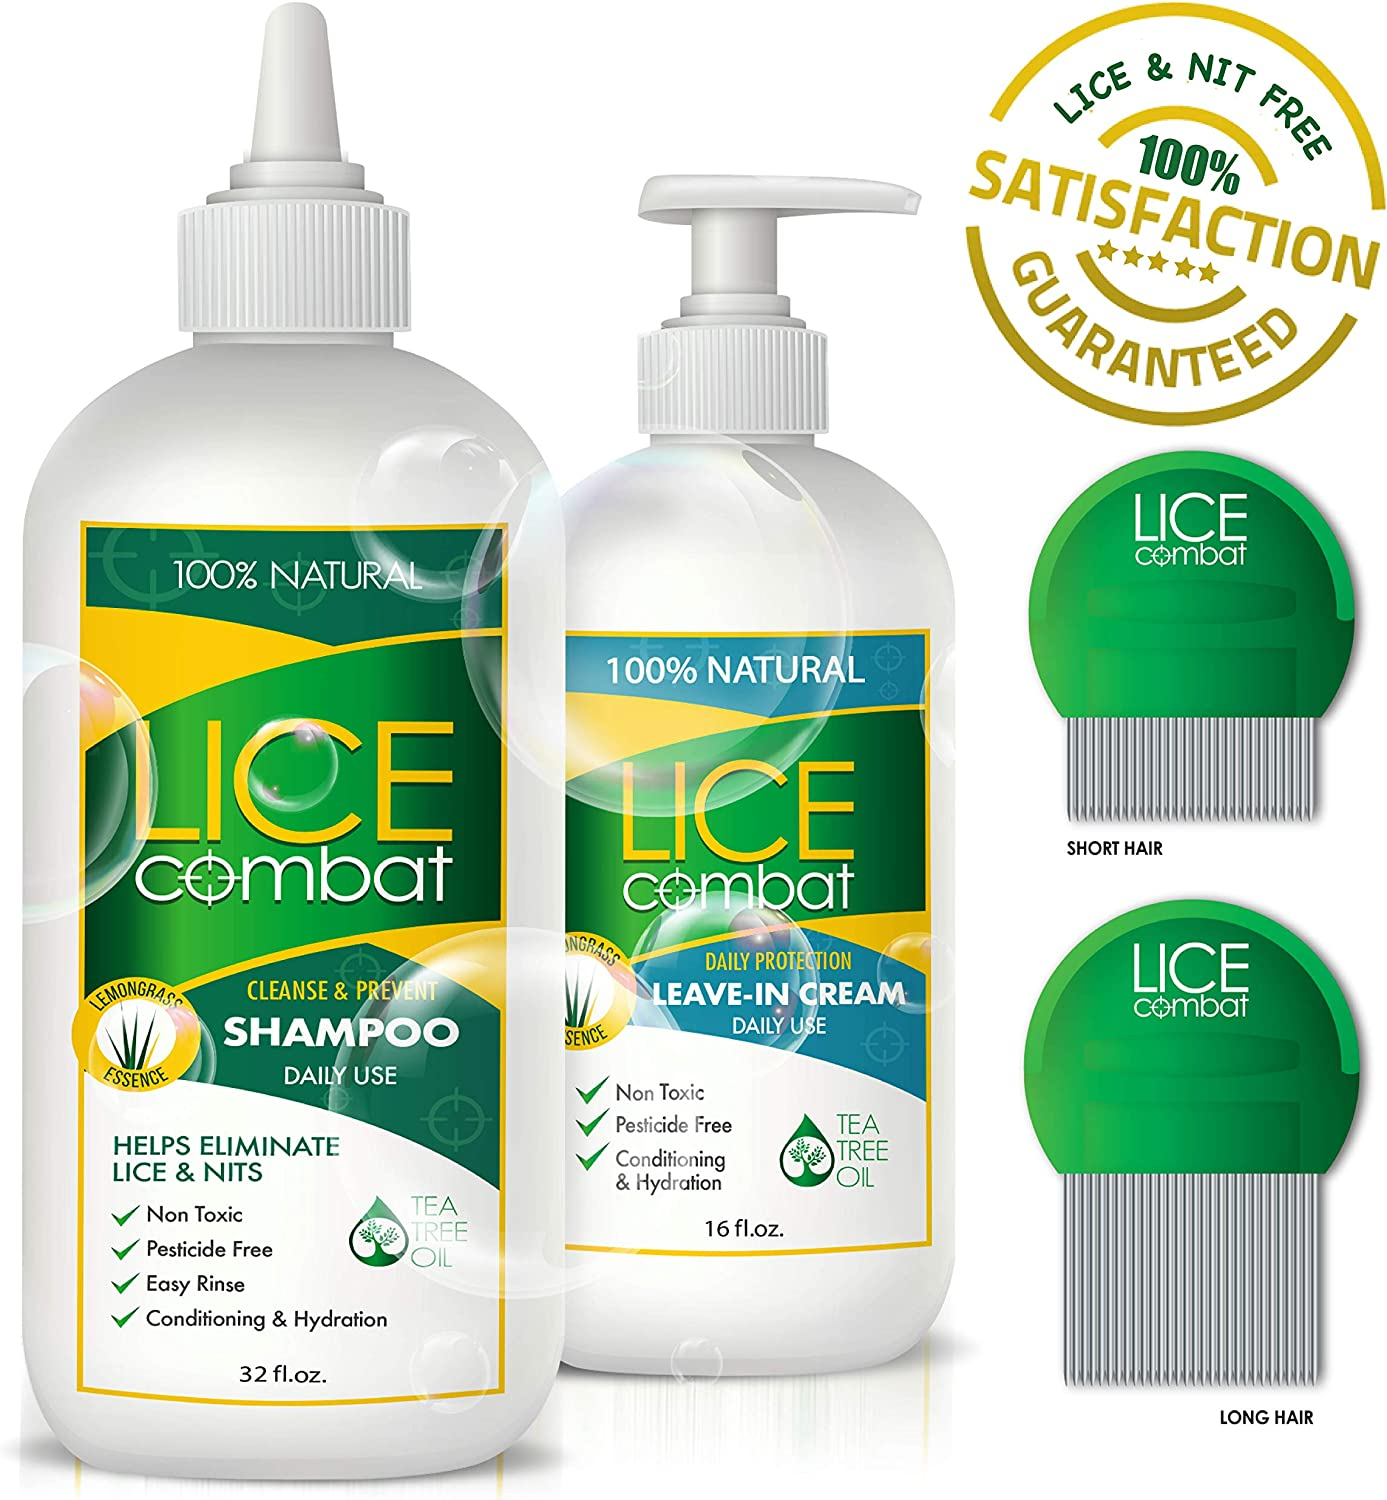 Lice Treatment Kit | Shampoo, Leave-in Cream & Two Combs | Kills Lice, Super Lice & Nits | Repels & Prevents | Pesticide Free | 100% Natural | Tea Tree + Coconut Oil | Best Value oz | by LICE Combat